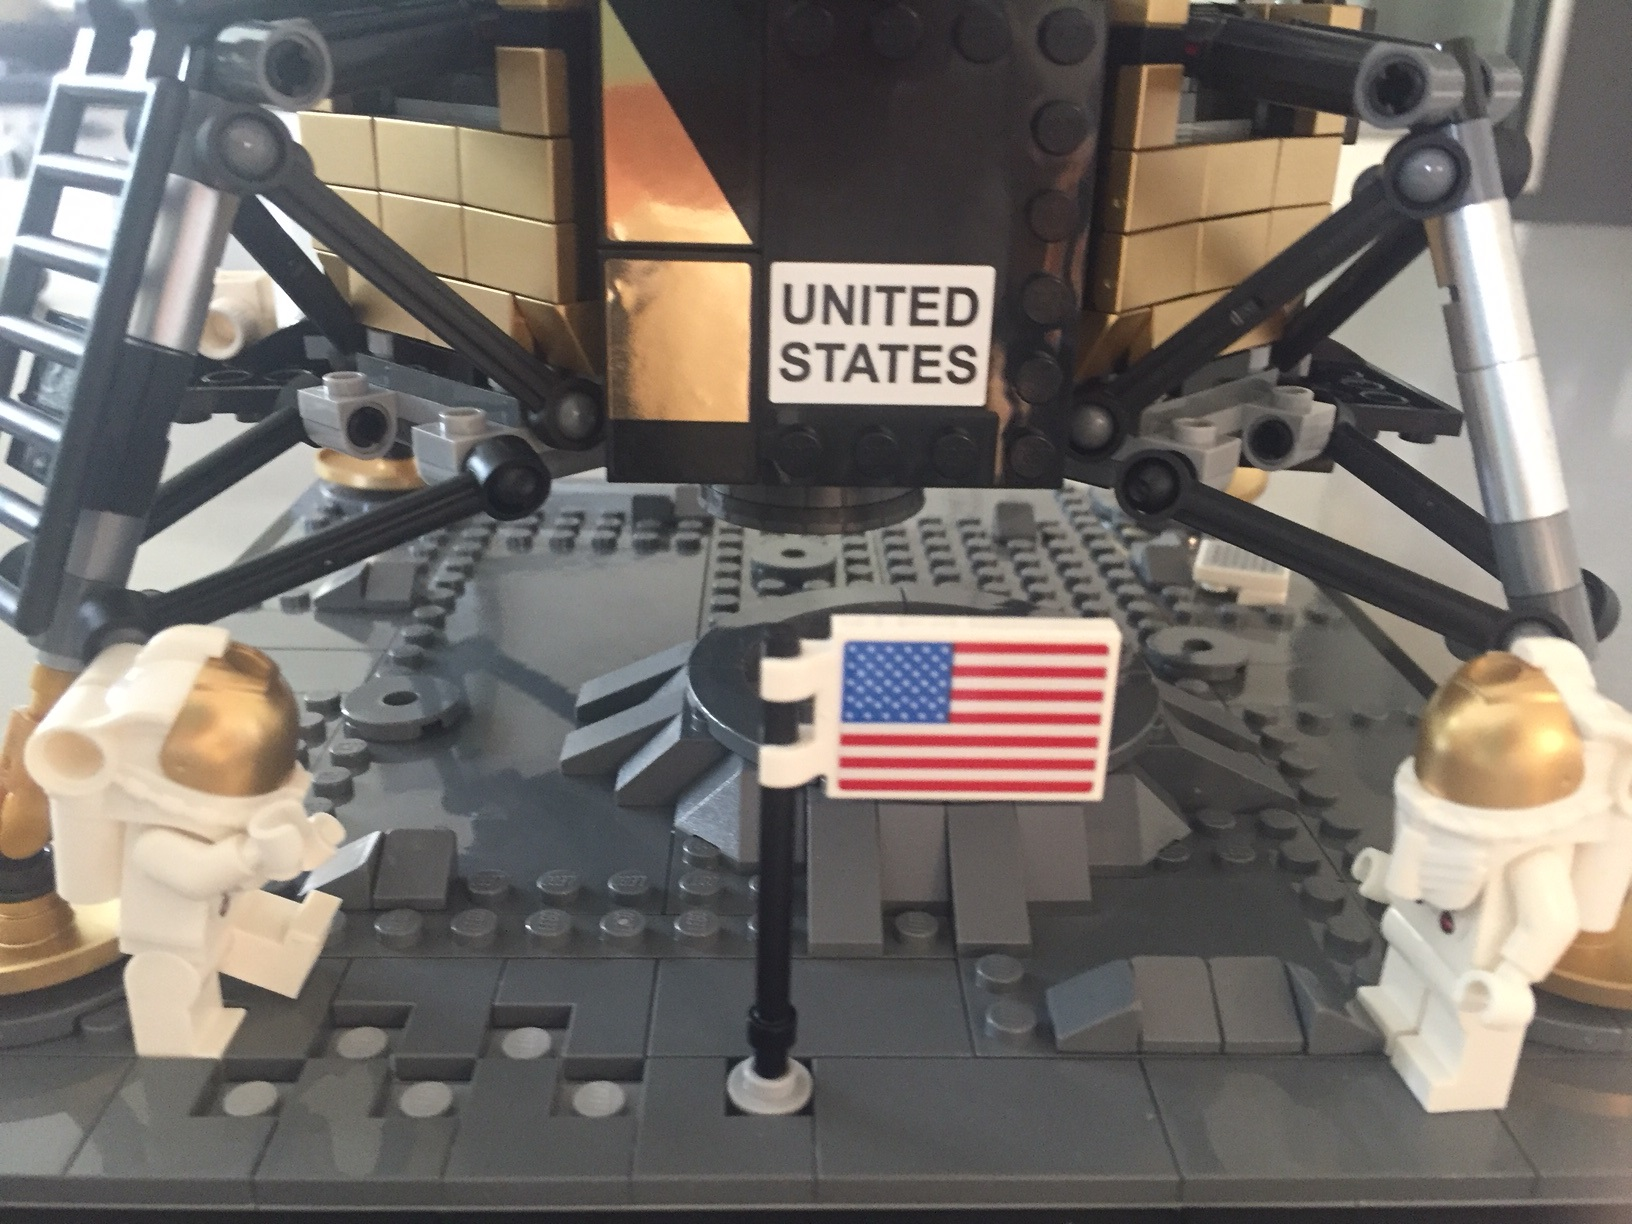 Two Lego figures of the moon landing